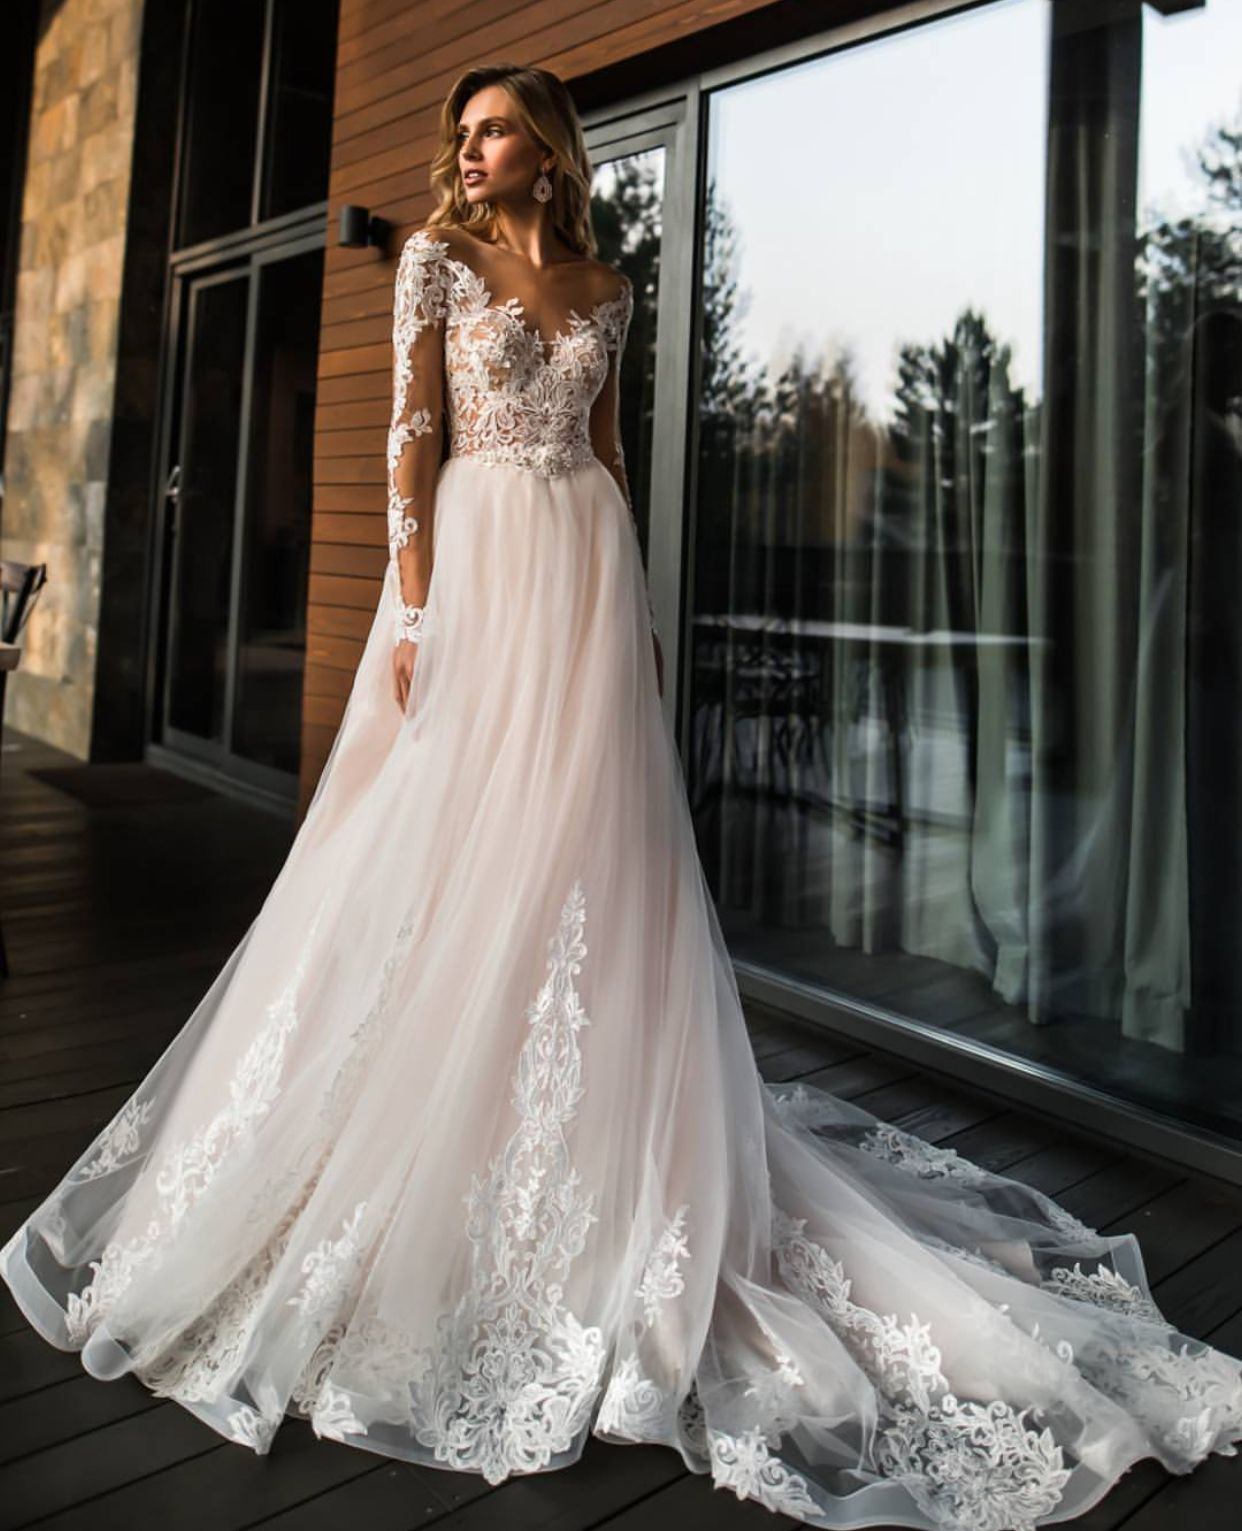 Fairytale ball gown wedding dresses  Pin by Cassandra on Happily Ever After  Pinterest  Florence